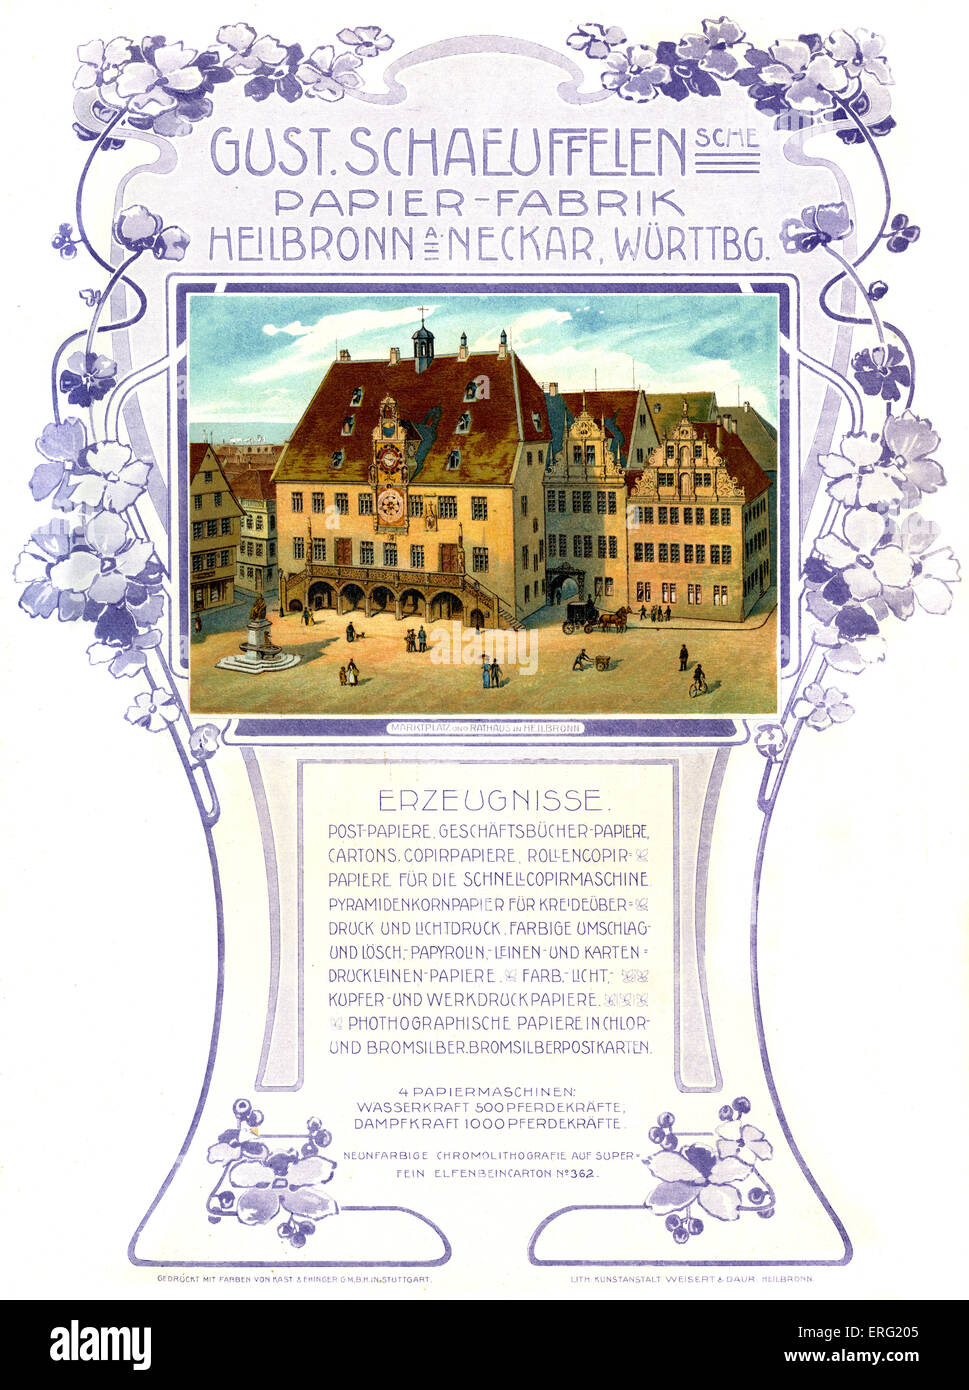 Geman advert for the Gustav Schäuffelen paper factory in Heilbron am Neckar, Württemberg.  Picture shows - Stock Image